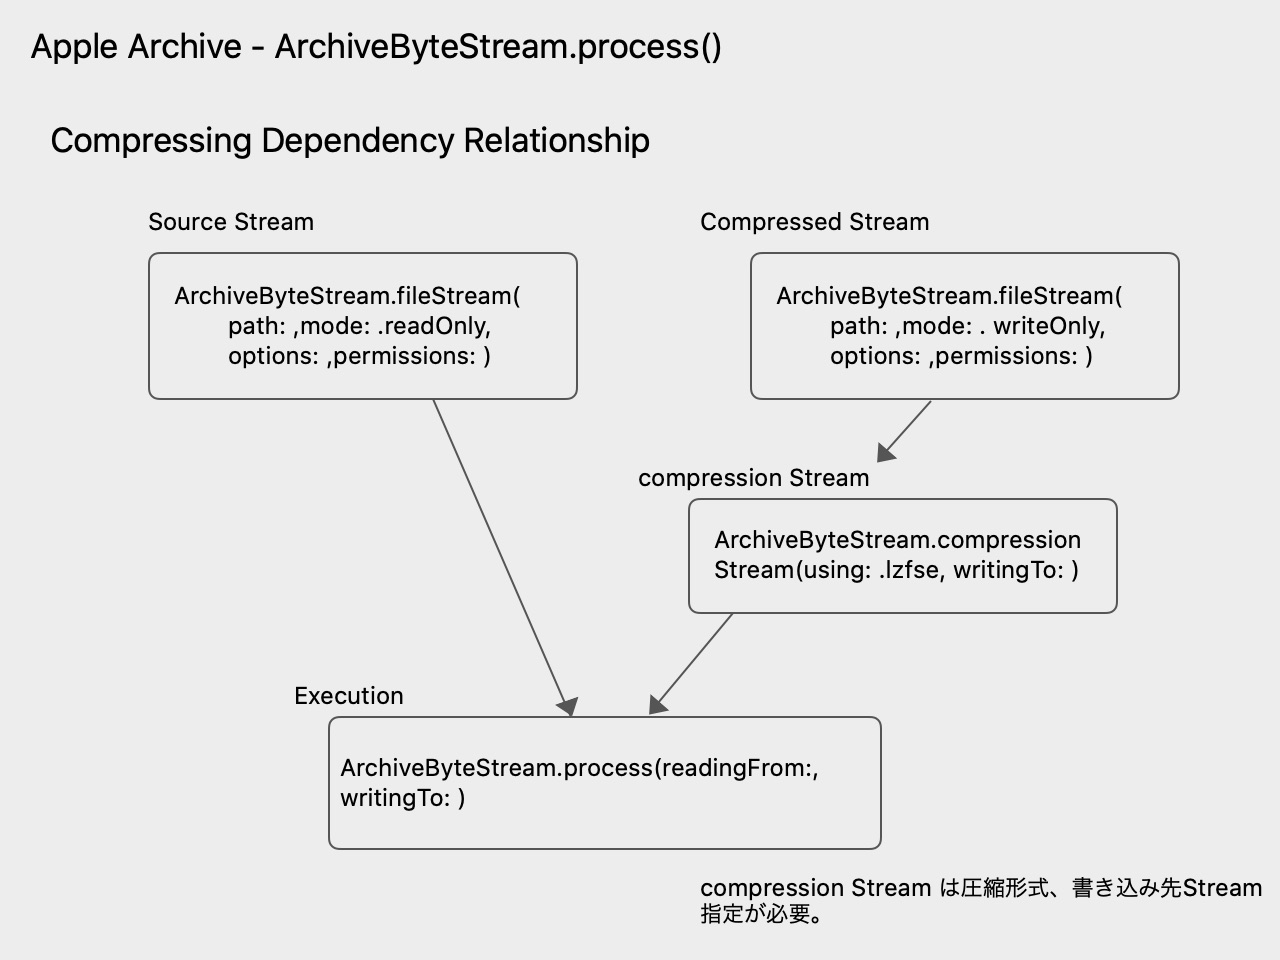 Compressing Dependency Relationship